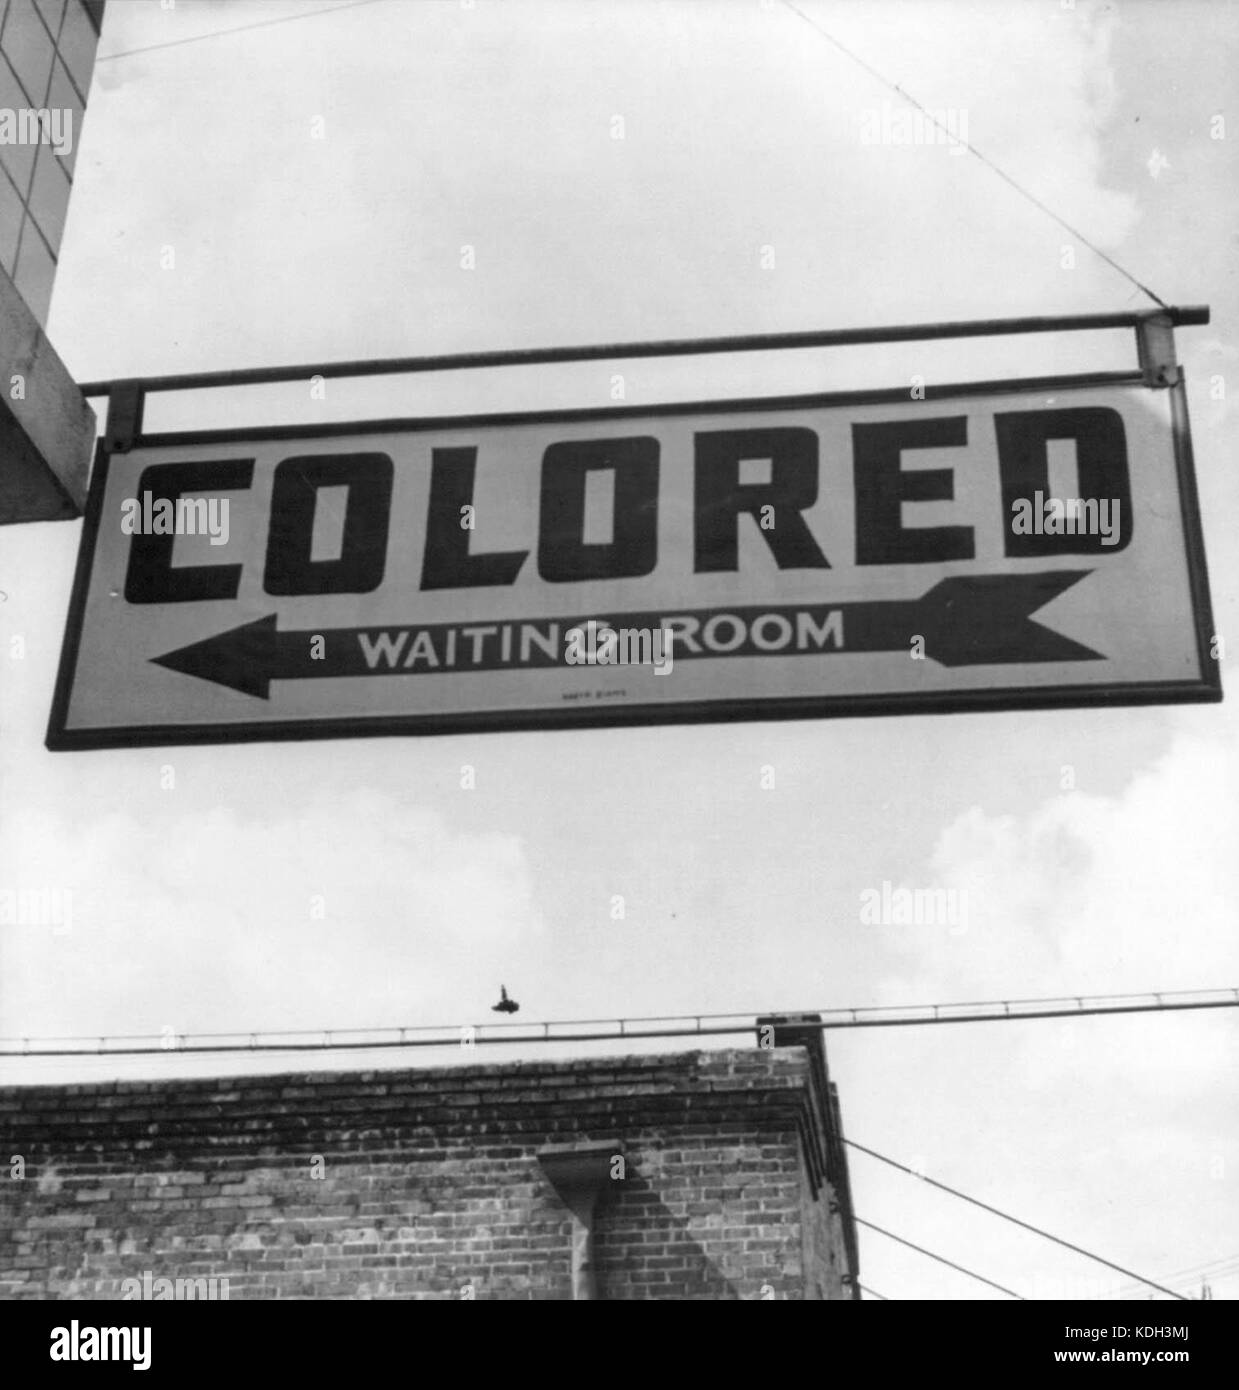 Racial segregation was commonplace in the South until the 1960s. - Stock Image